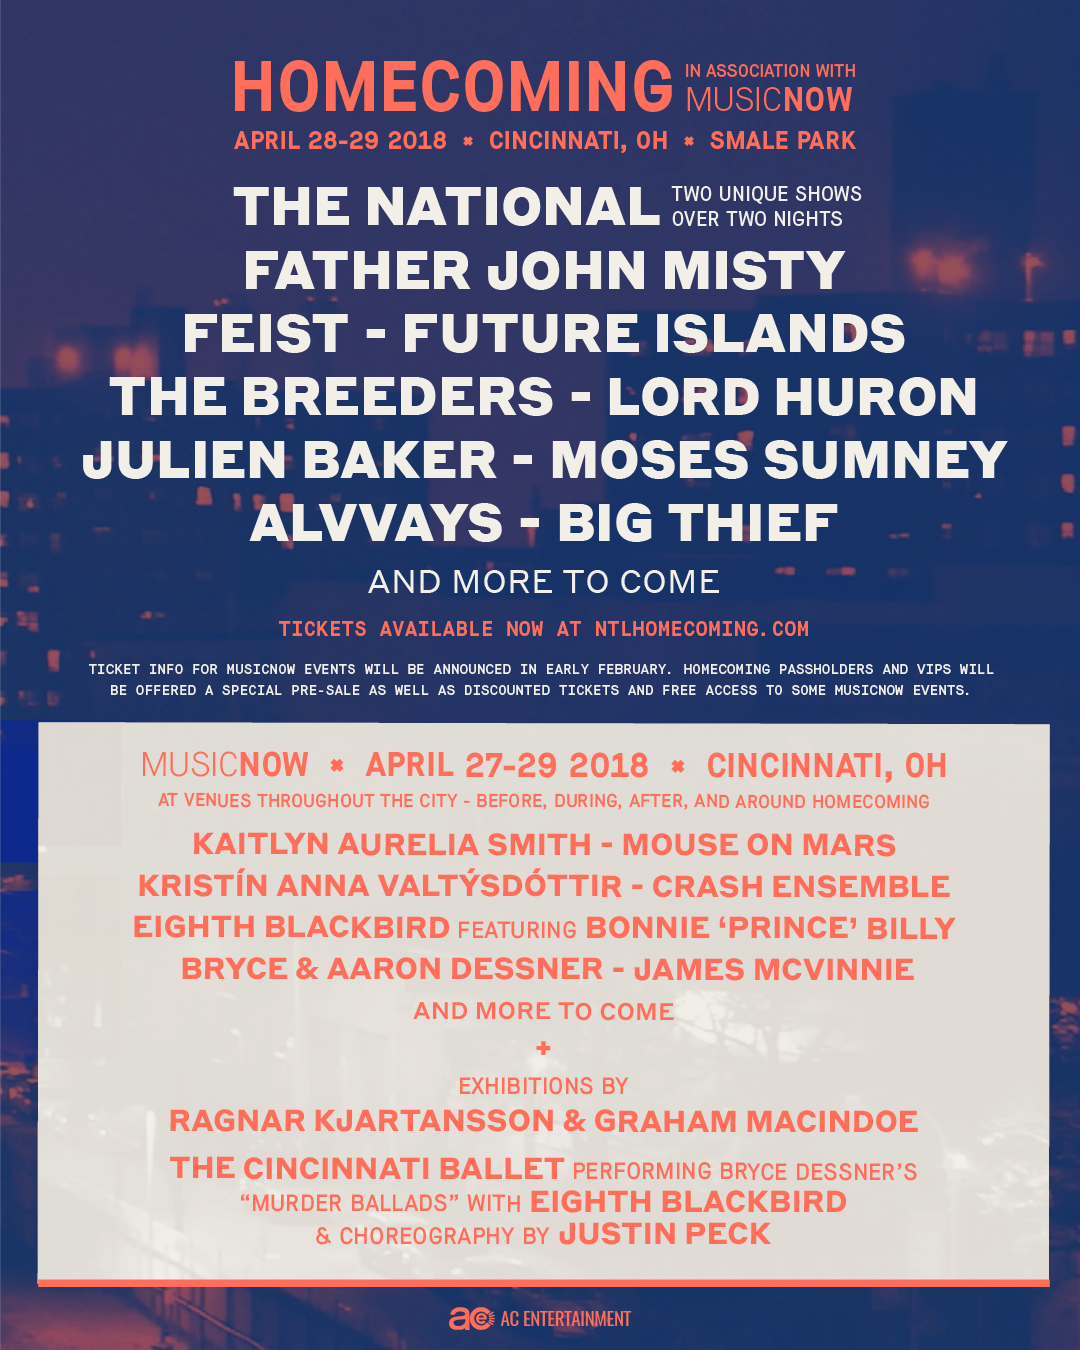 image1 The National reveal lineup for 2018 Homecoming Festival: Father John Misty, Feist, The Breeders